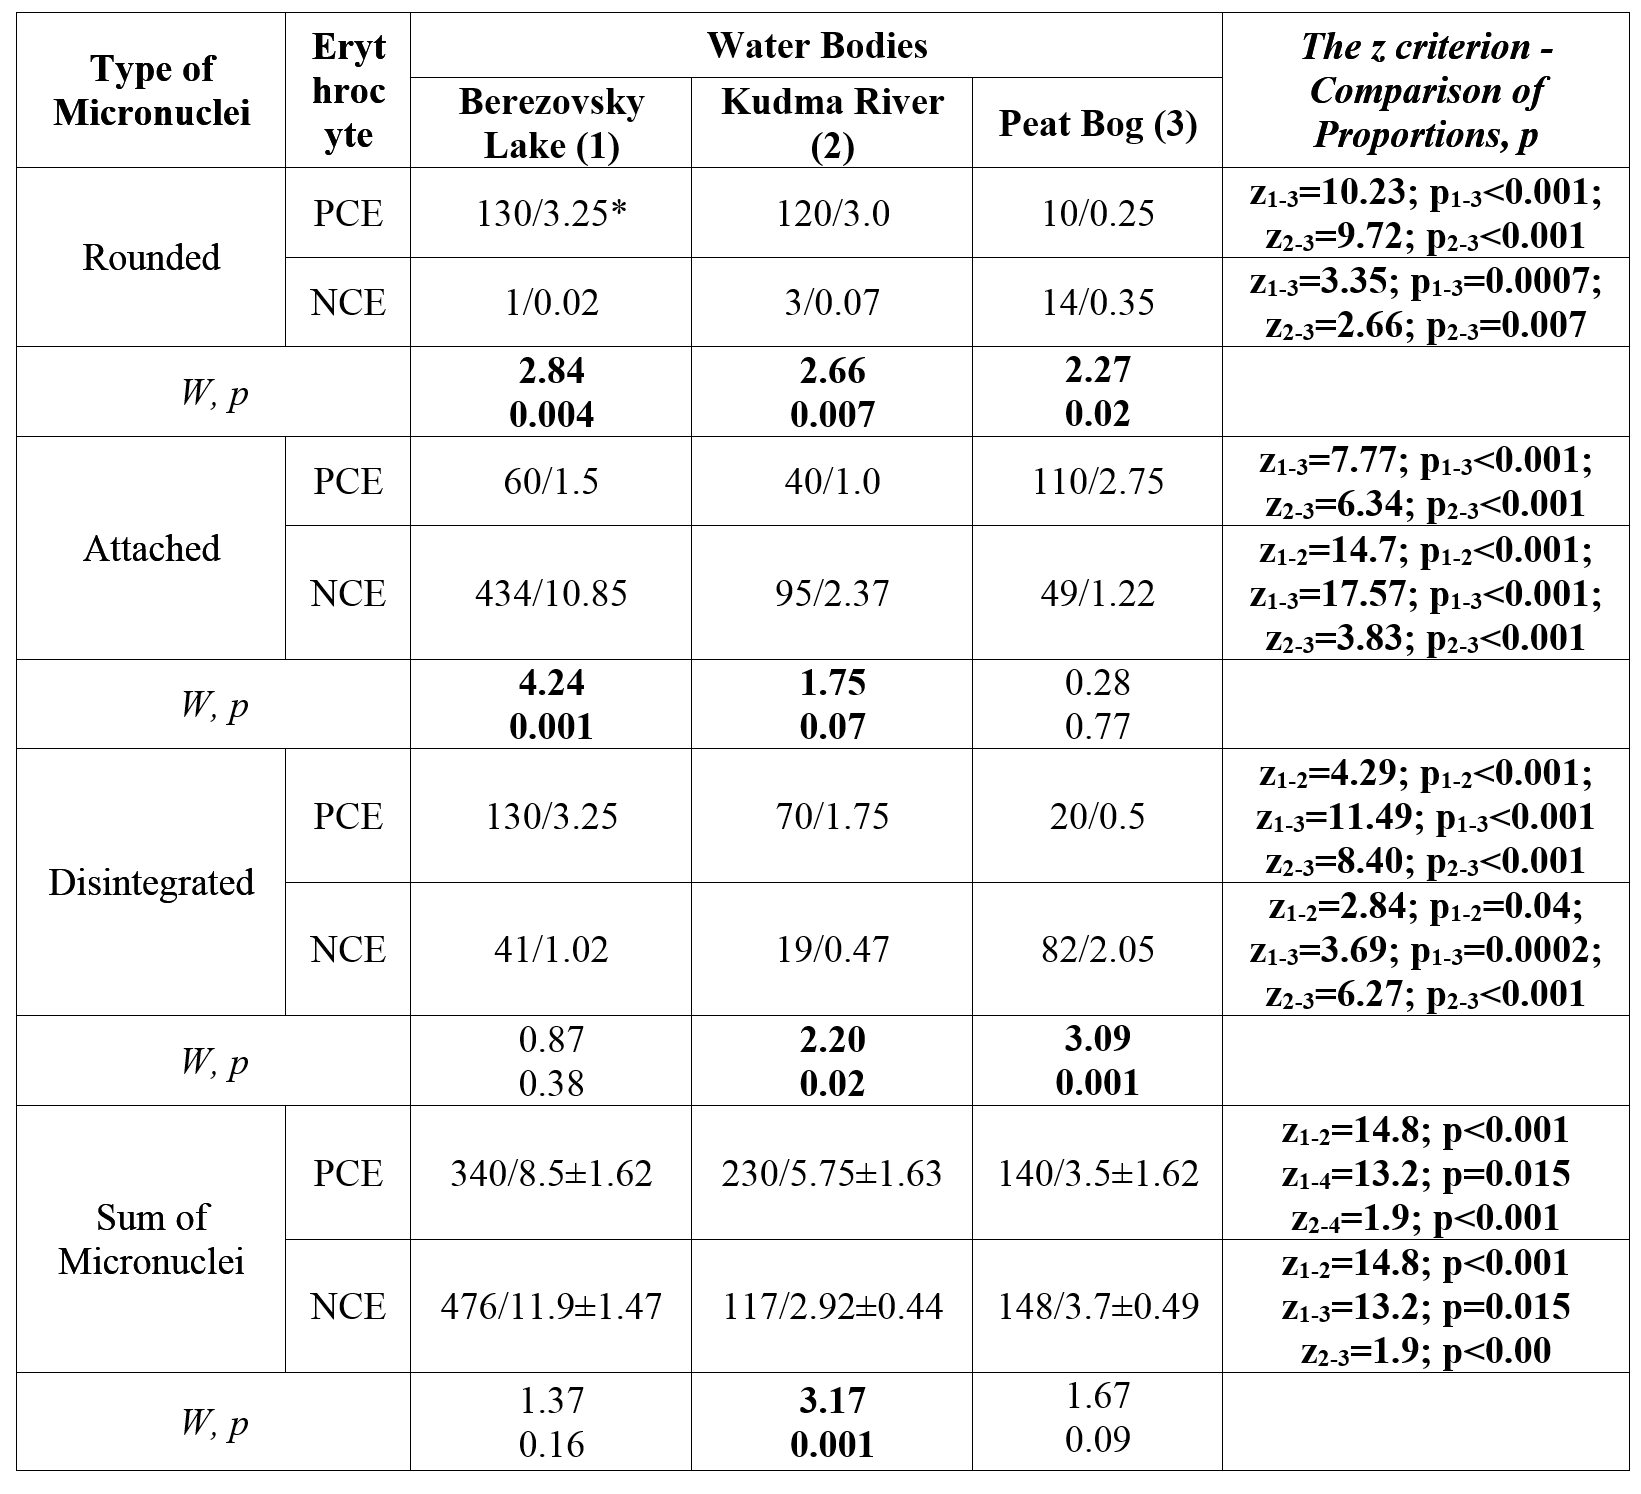 Table 1. Comparison of Pelophylax ridibundus Populations by the Micronuclei Content